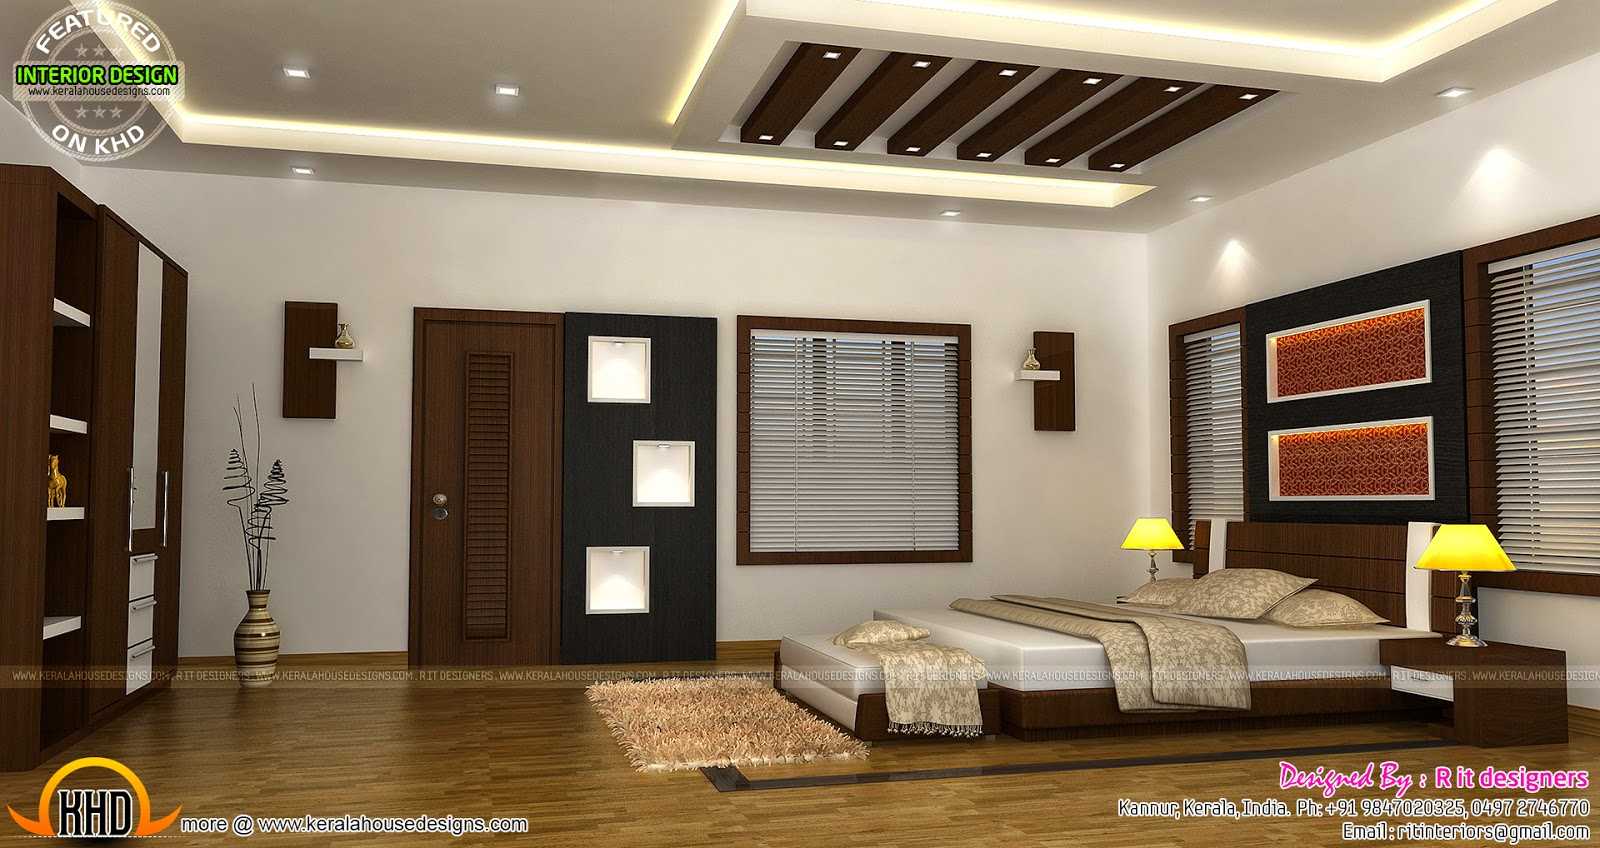 Bedroom interior design with cost kerala home design and floor plans Interior design ideas for kerala houses